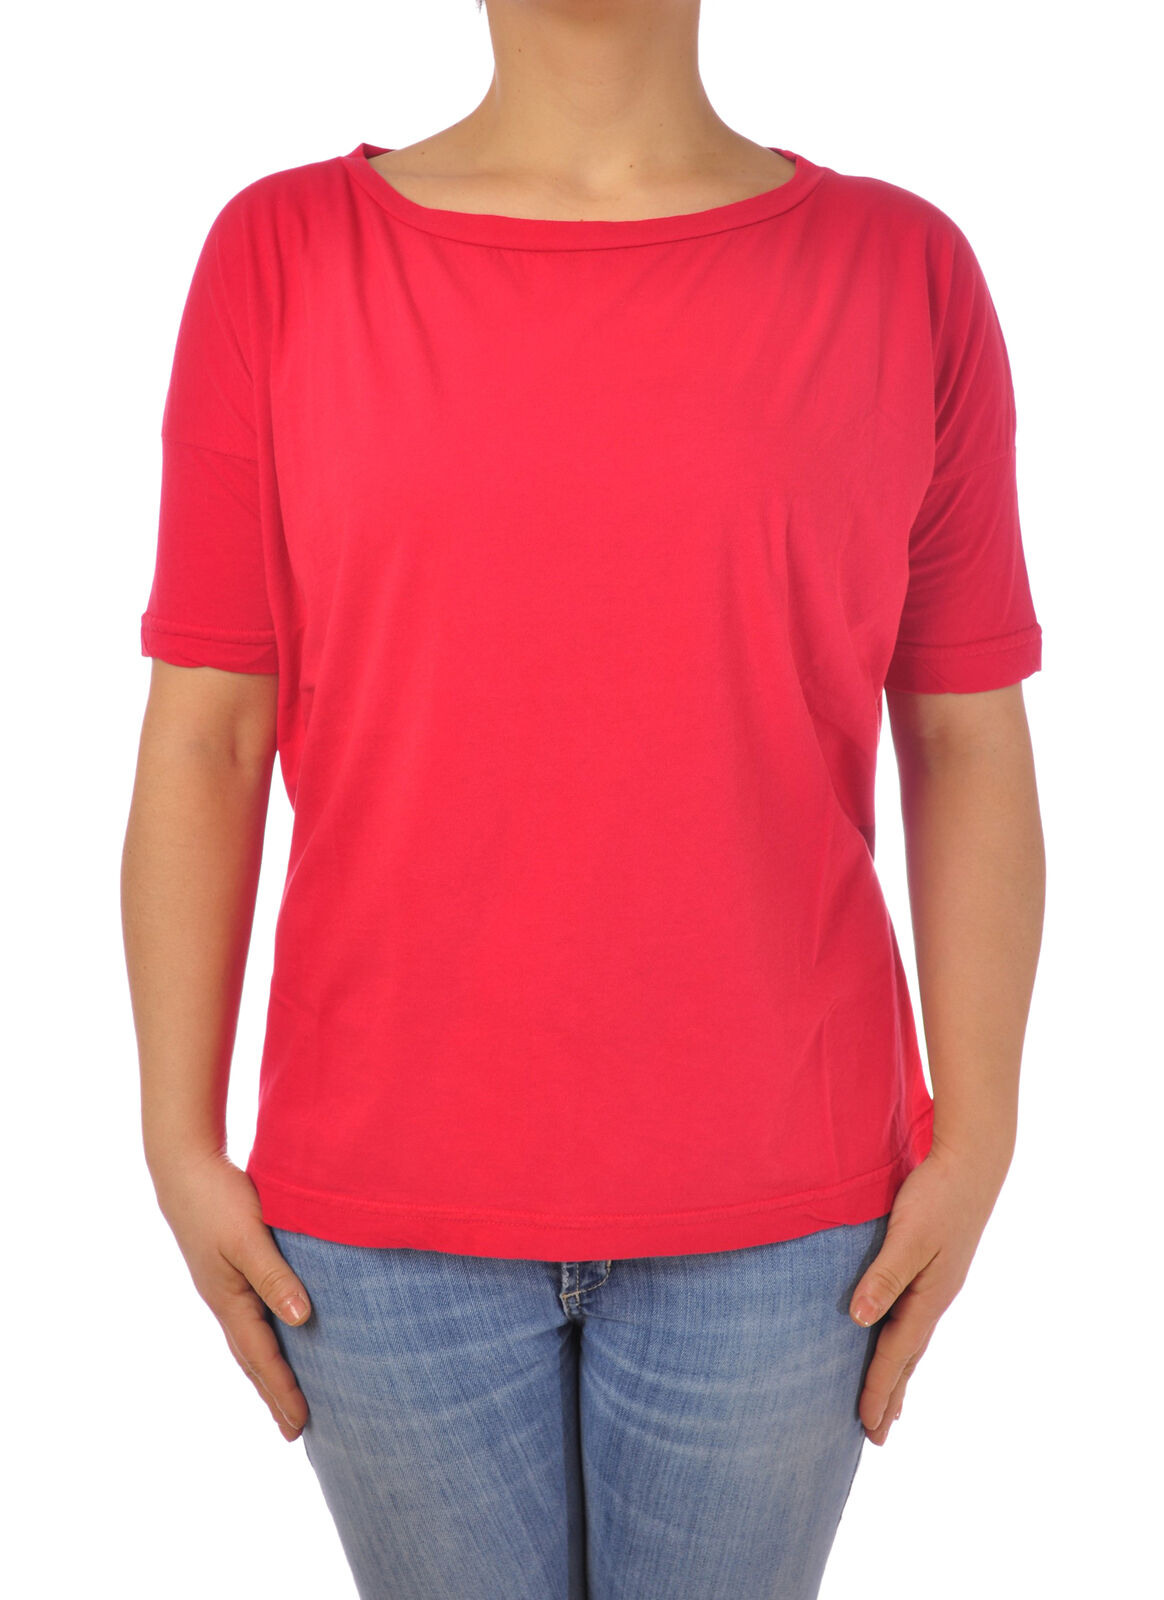 CROSSLEY - Topwear-T-shirts - Woman - Rosa - 5077225E181004